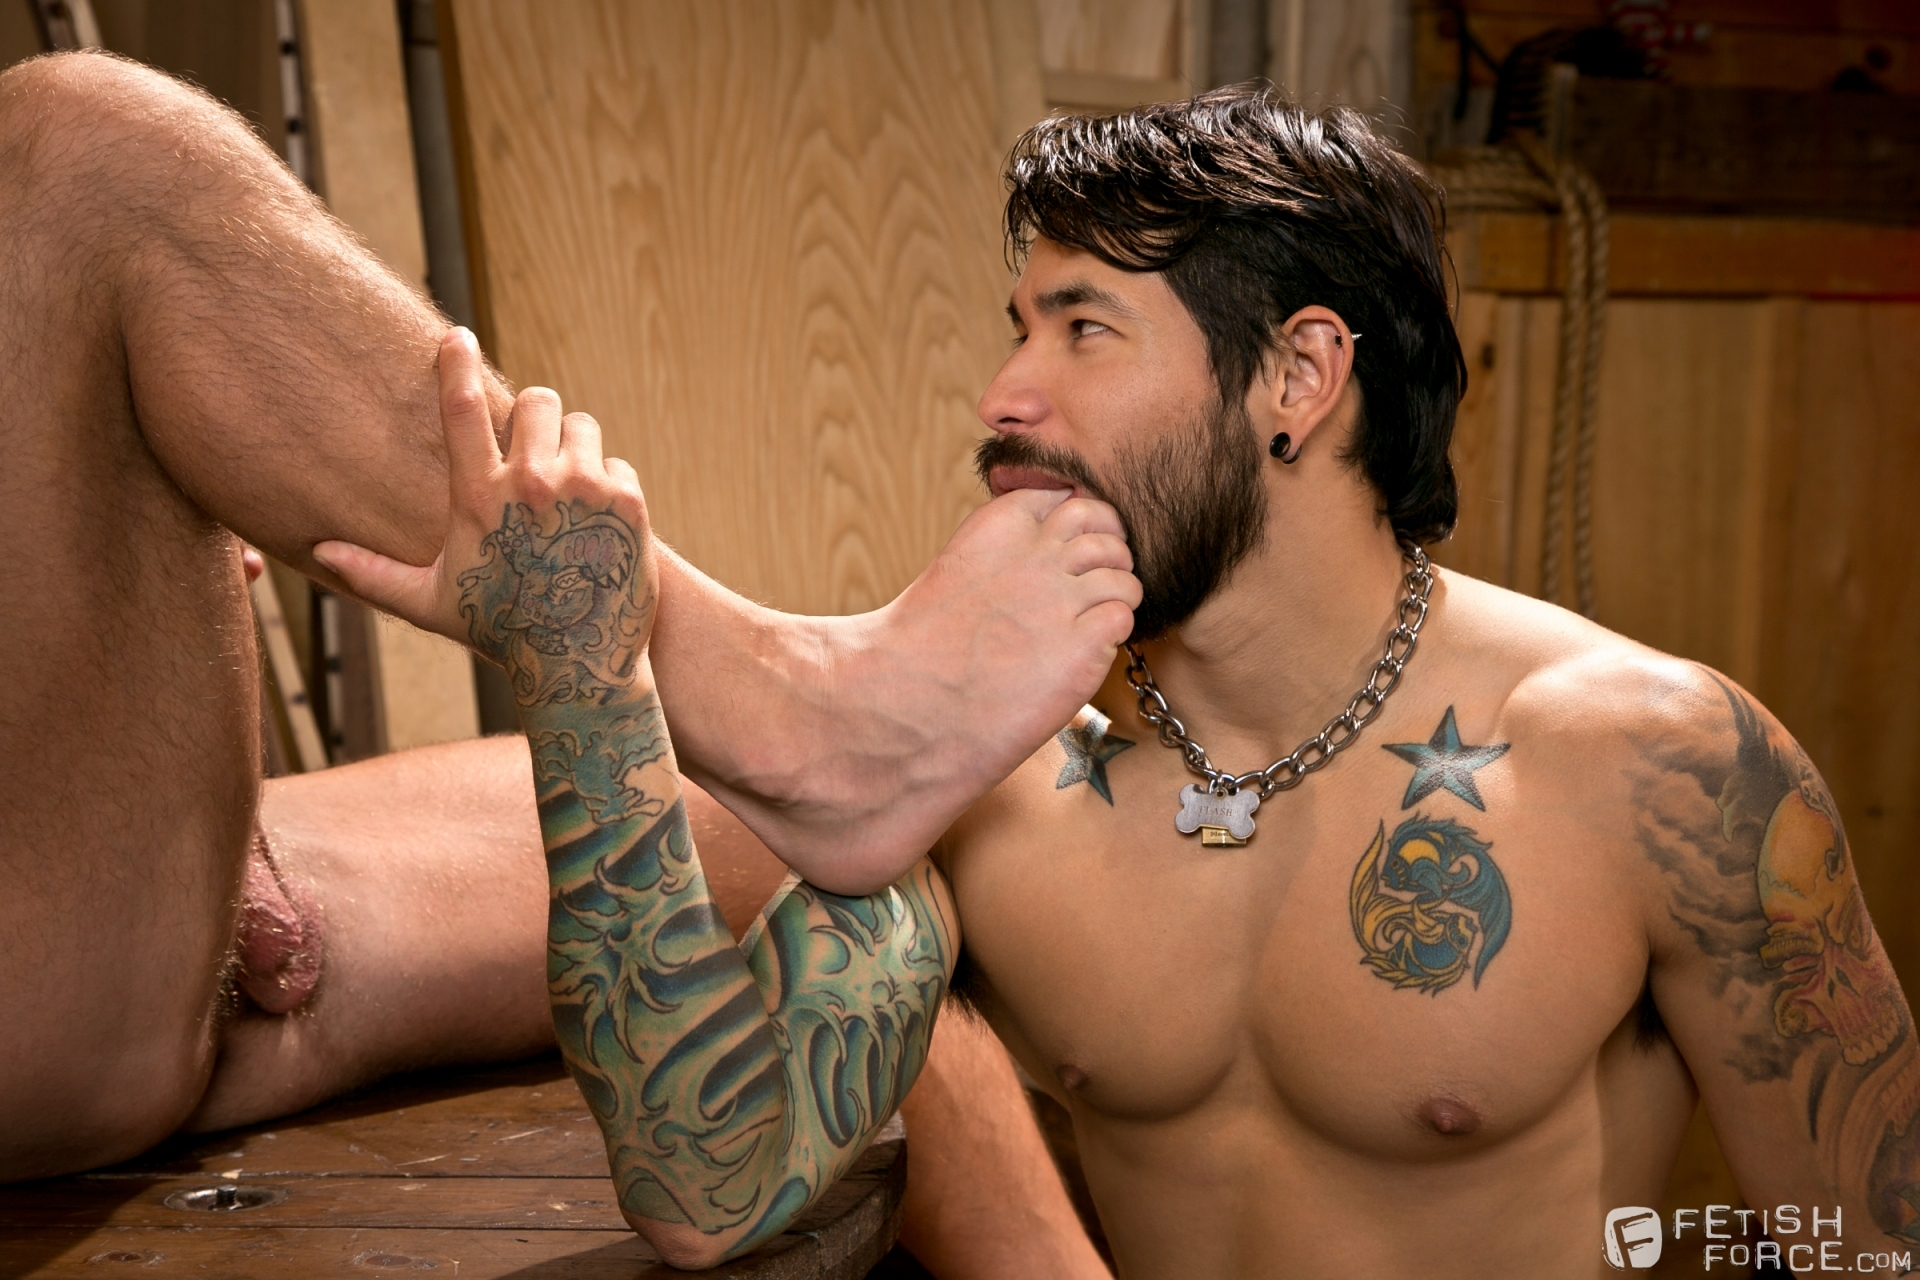 Men jerking each other off